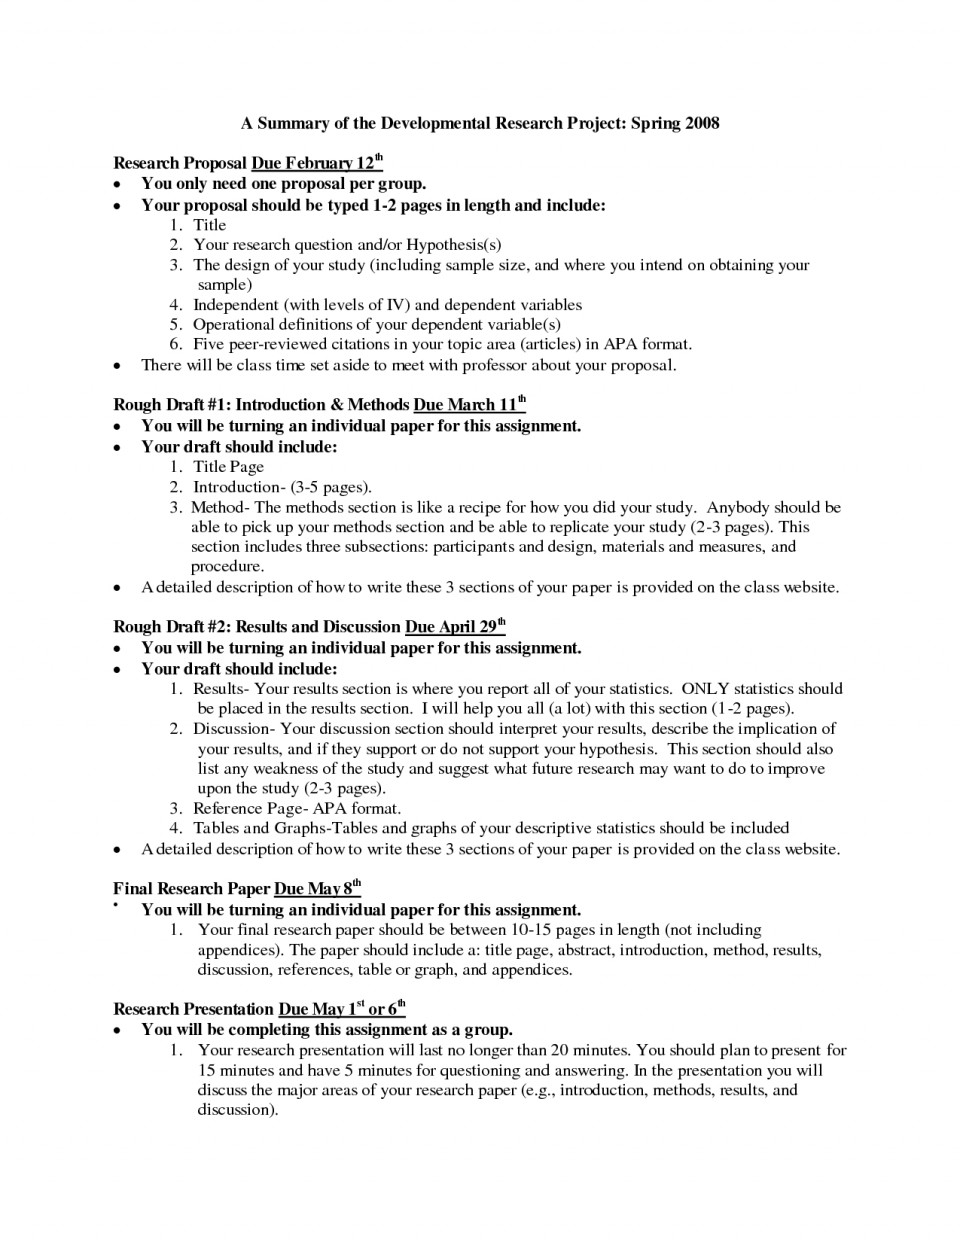 012 Good Research Paper Topic Psychology Undergraduate Resume Unique Sample Singular Topics 2019 Ideas In Business And Finance For College Students 960